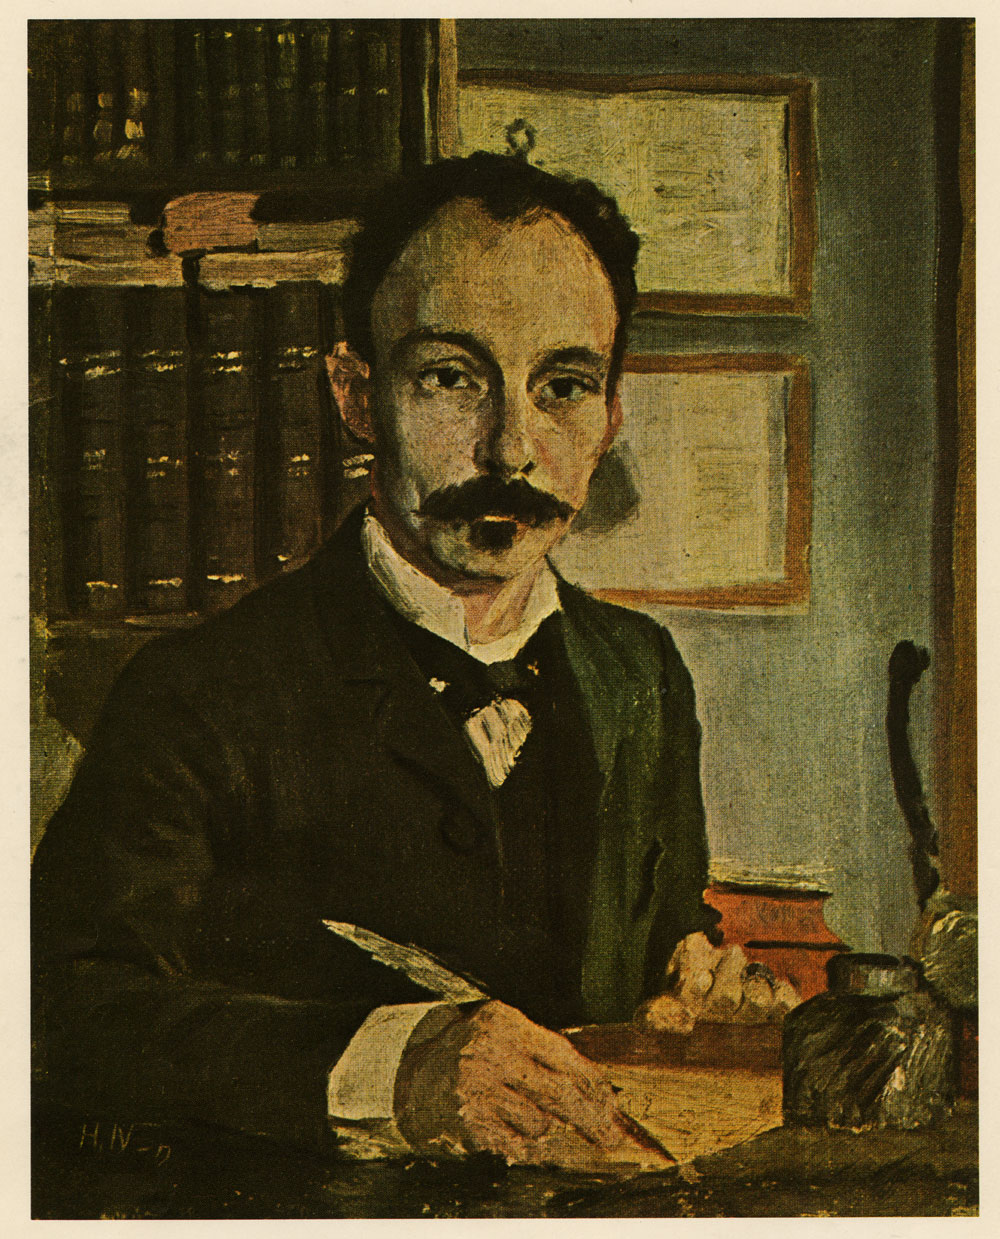 Herman Normann (Sweden, 1864–1906), Portrait of José Martí (1853-95), 1891. Oil on  canvas. Reproduction. Cuban Heritage Collection, University of Miami.